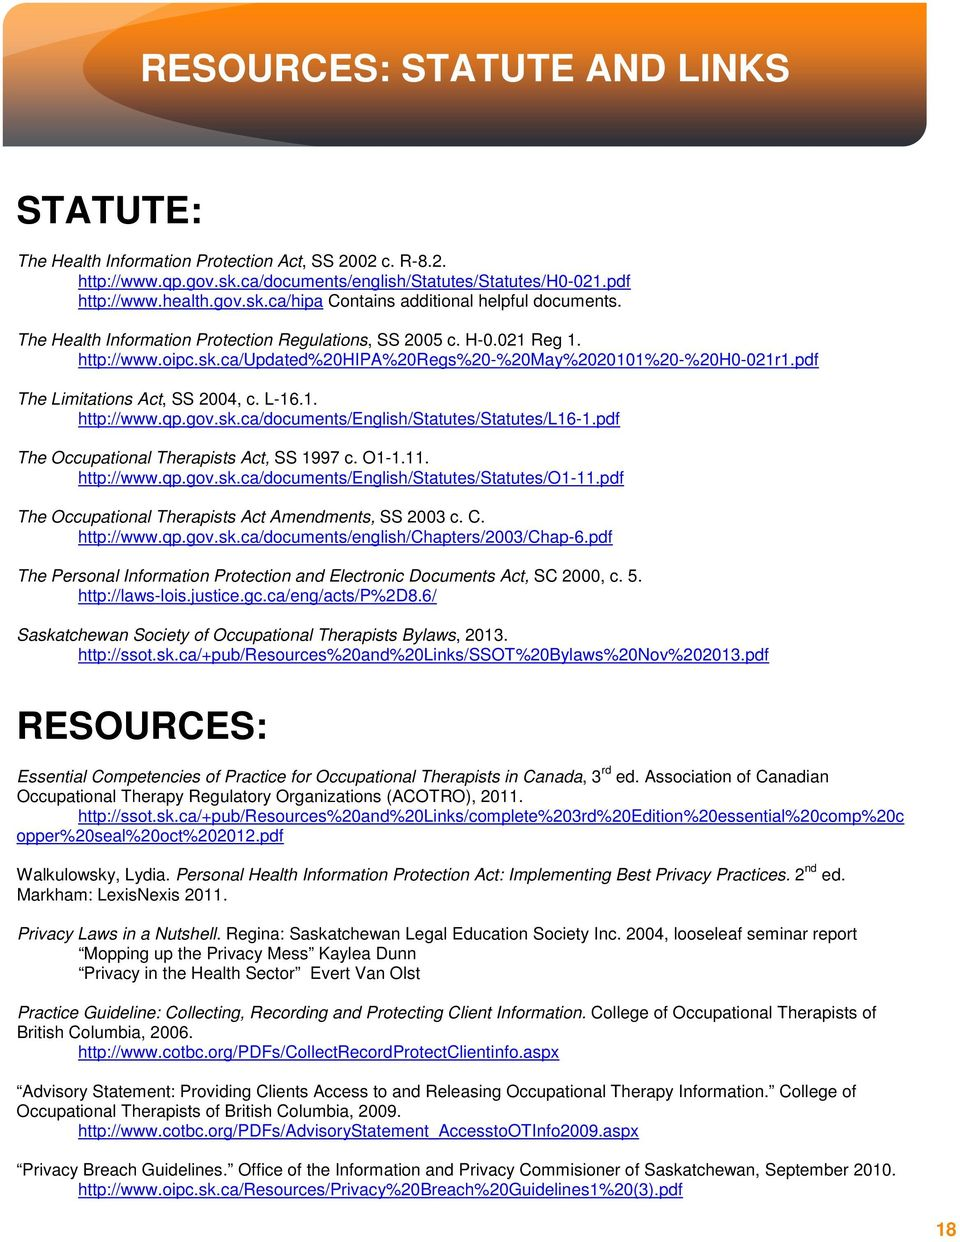 gov.sk.ca/documents/english/statutes/statutes/l16-1.pdf The Occupational Therapists Act, SS 1997 c. O1-1.11. http://www.qp.gov.sk.ca/documents/english/statutes/statutes/o1-11.